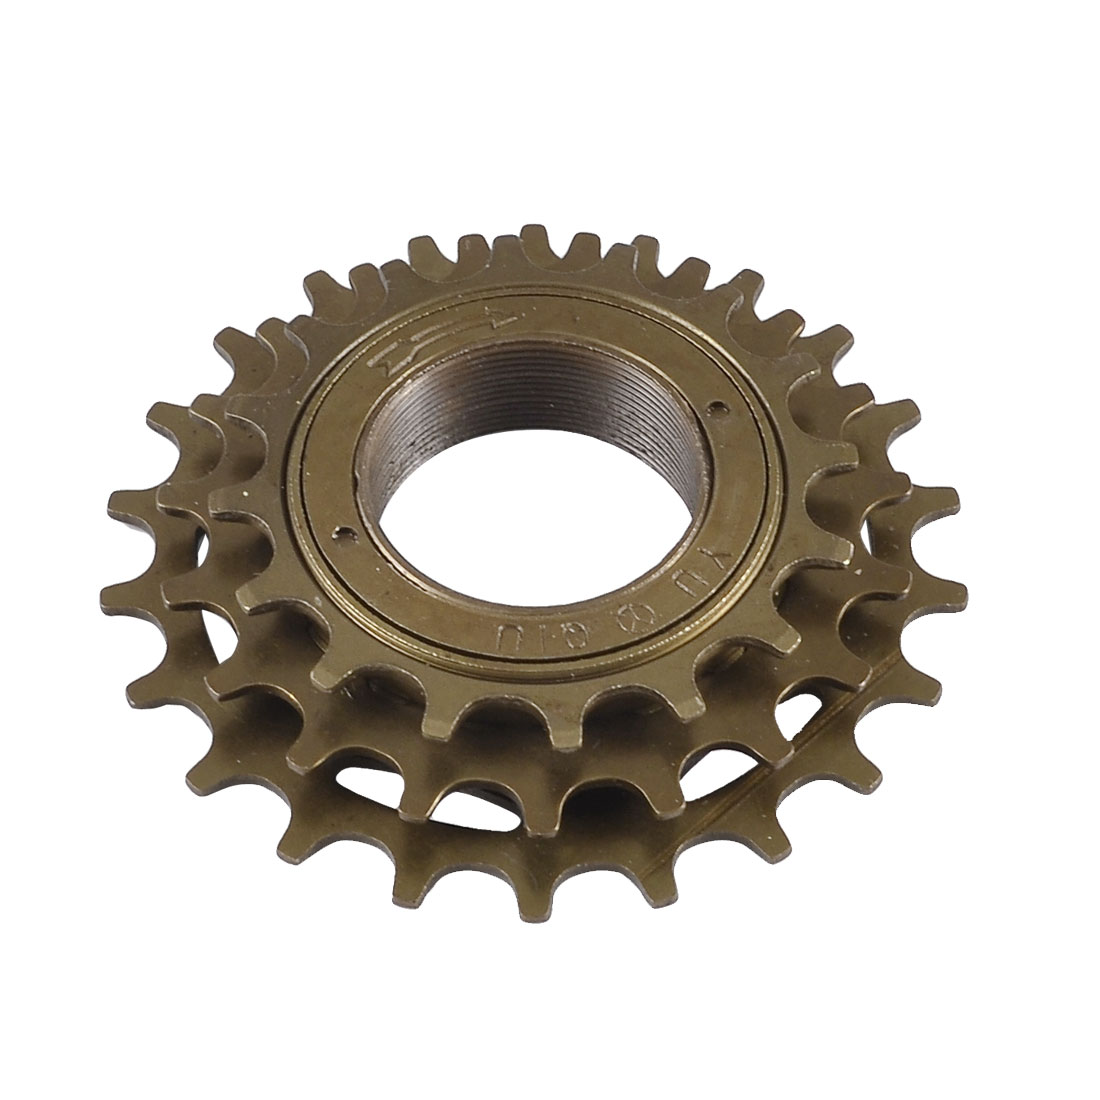 Bike Metal Scooter Sprocket Wheel 3 Speed Freewheel Replacement